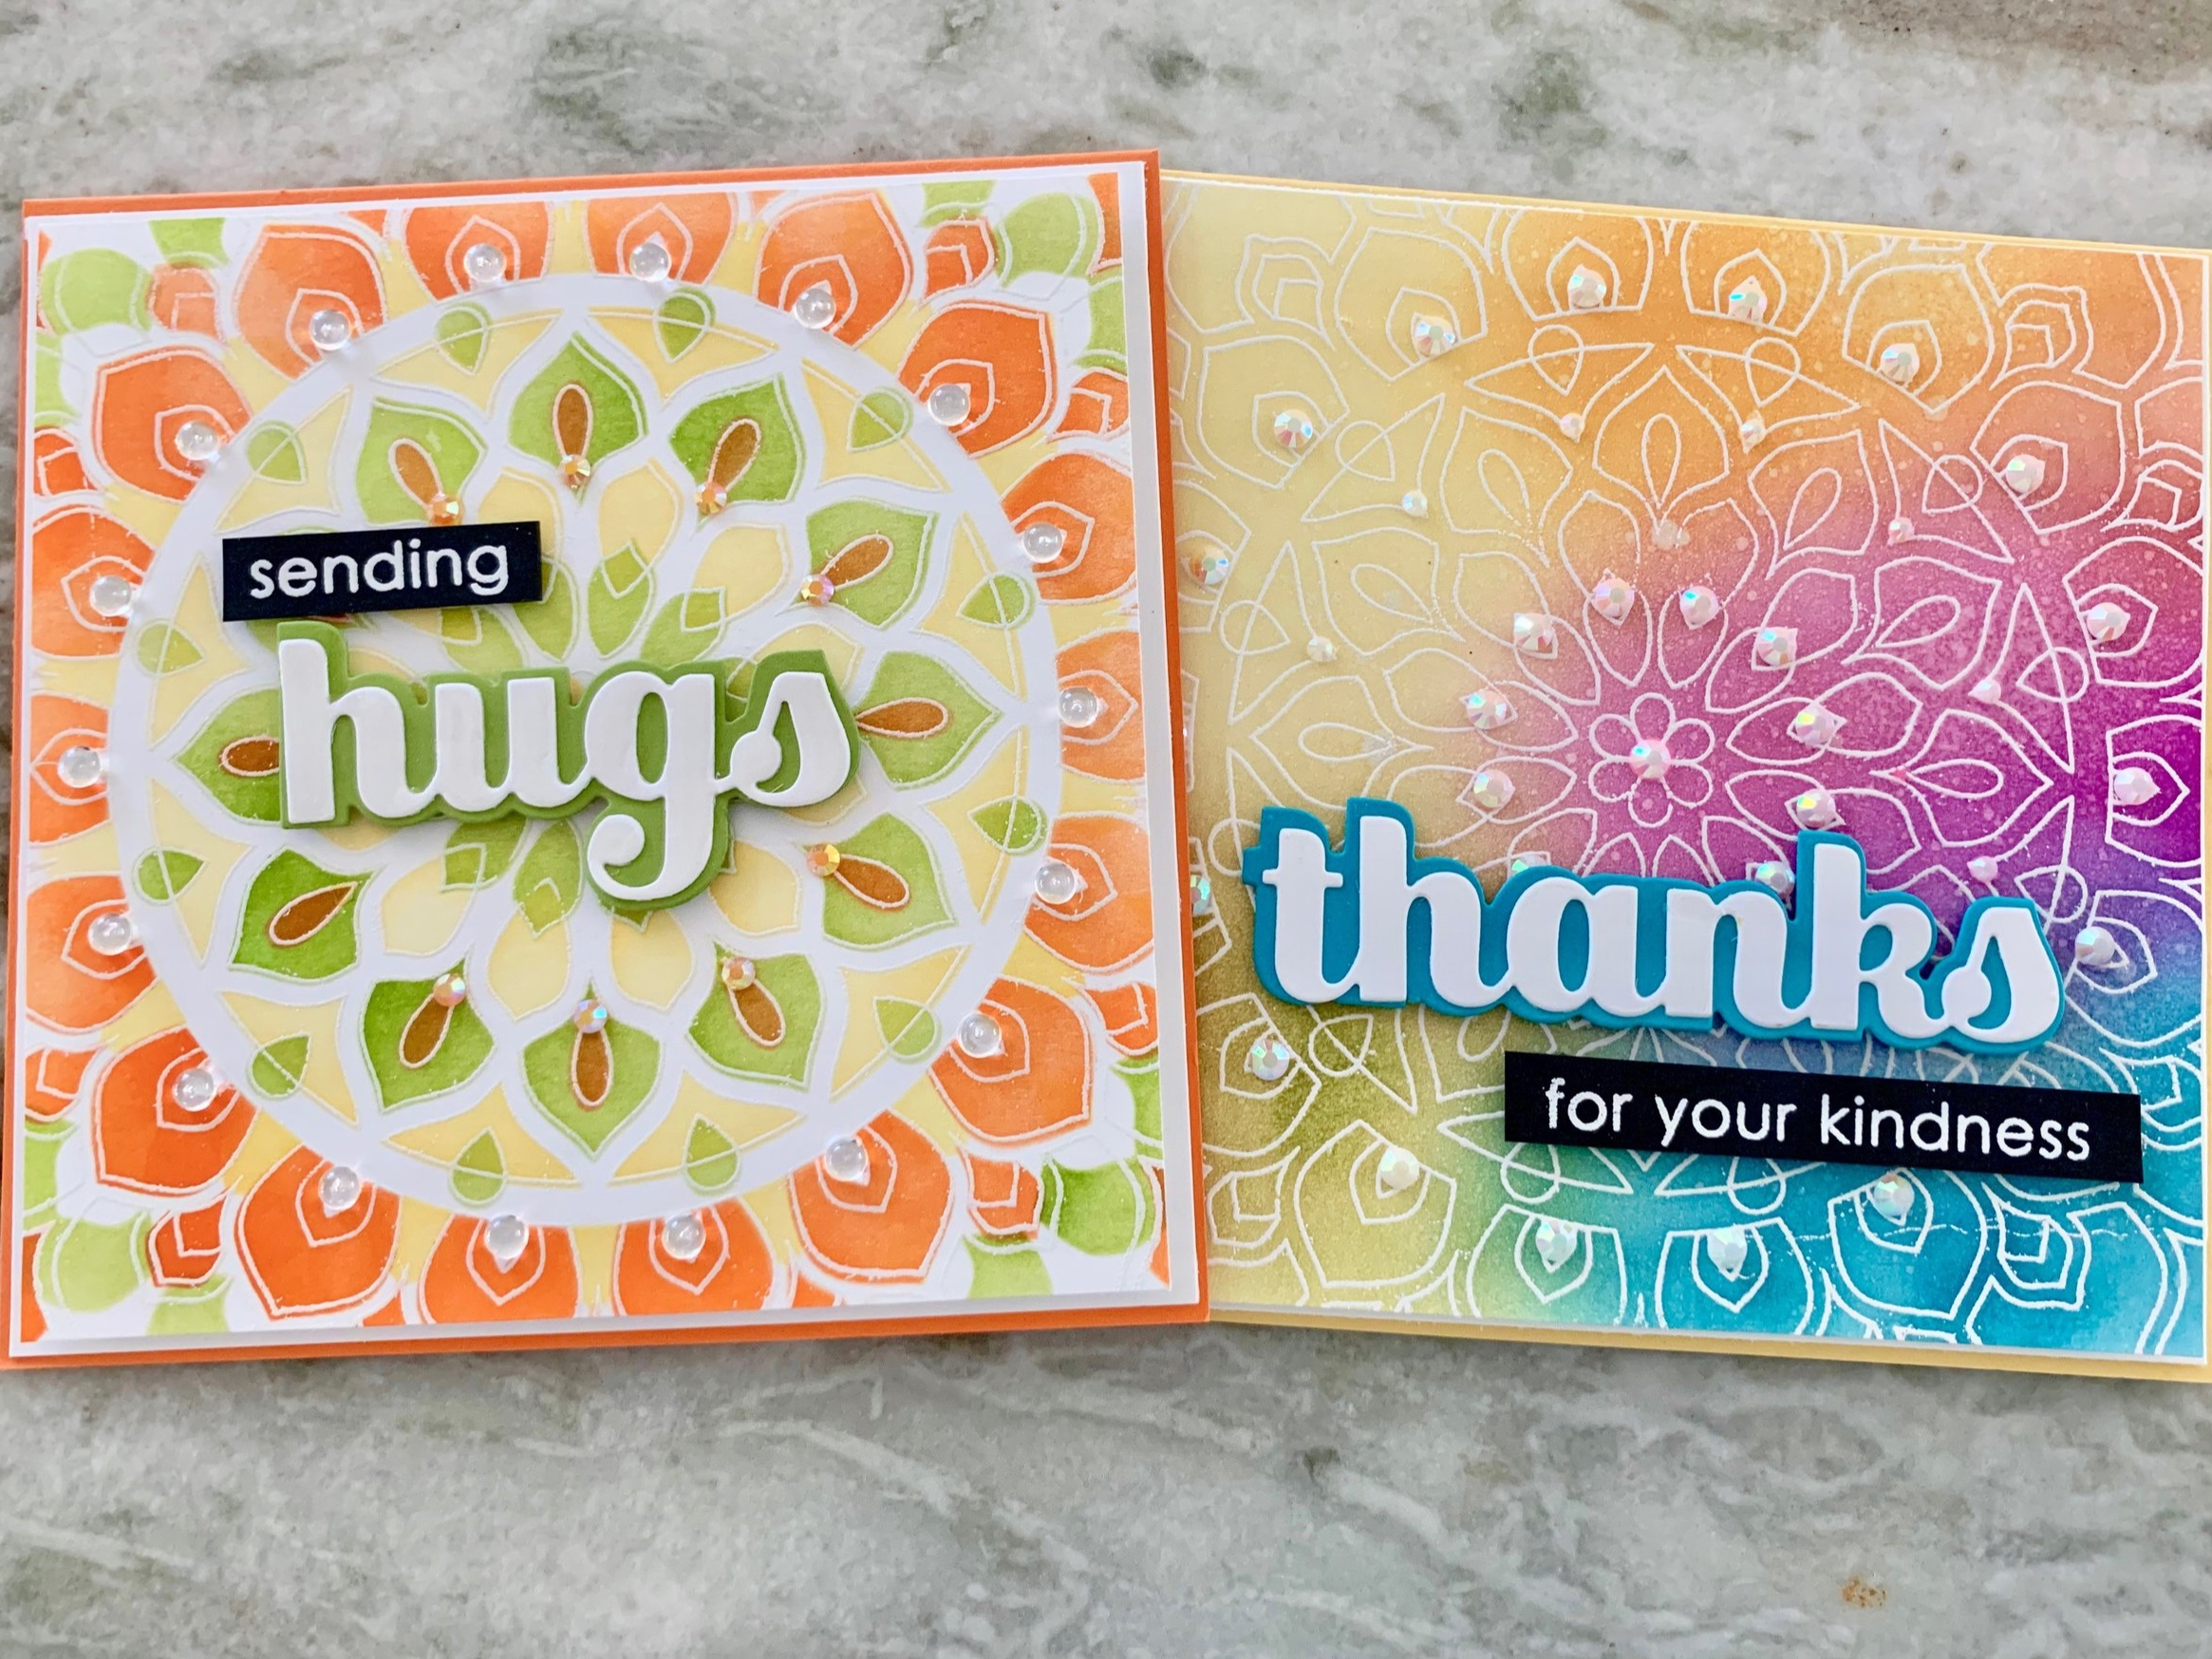 birch press Mandala cards | Positively jane